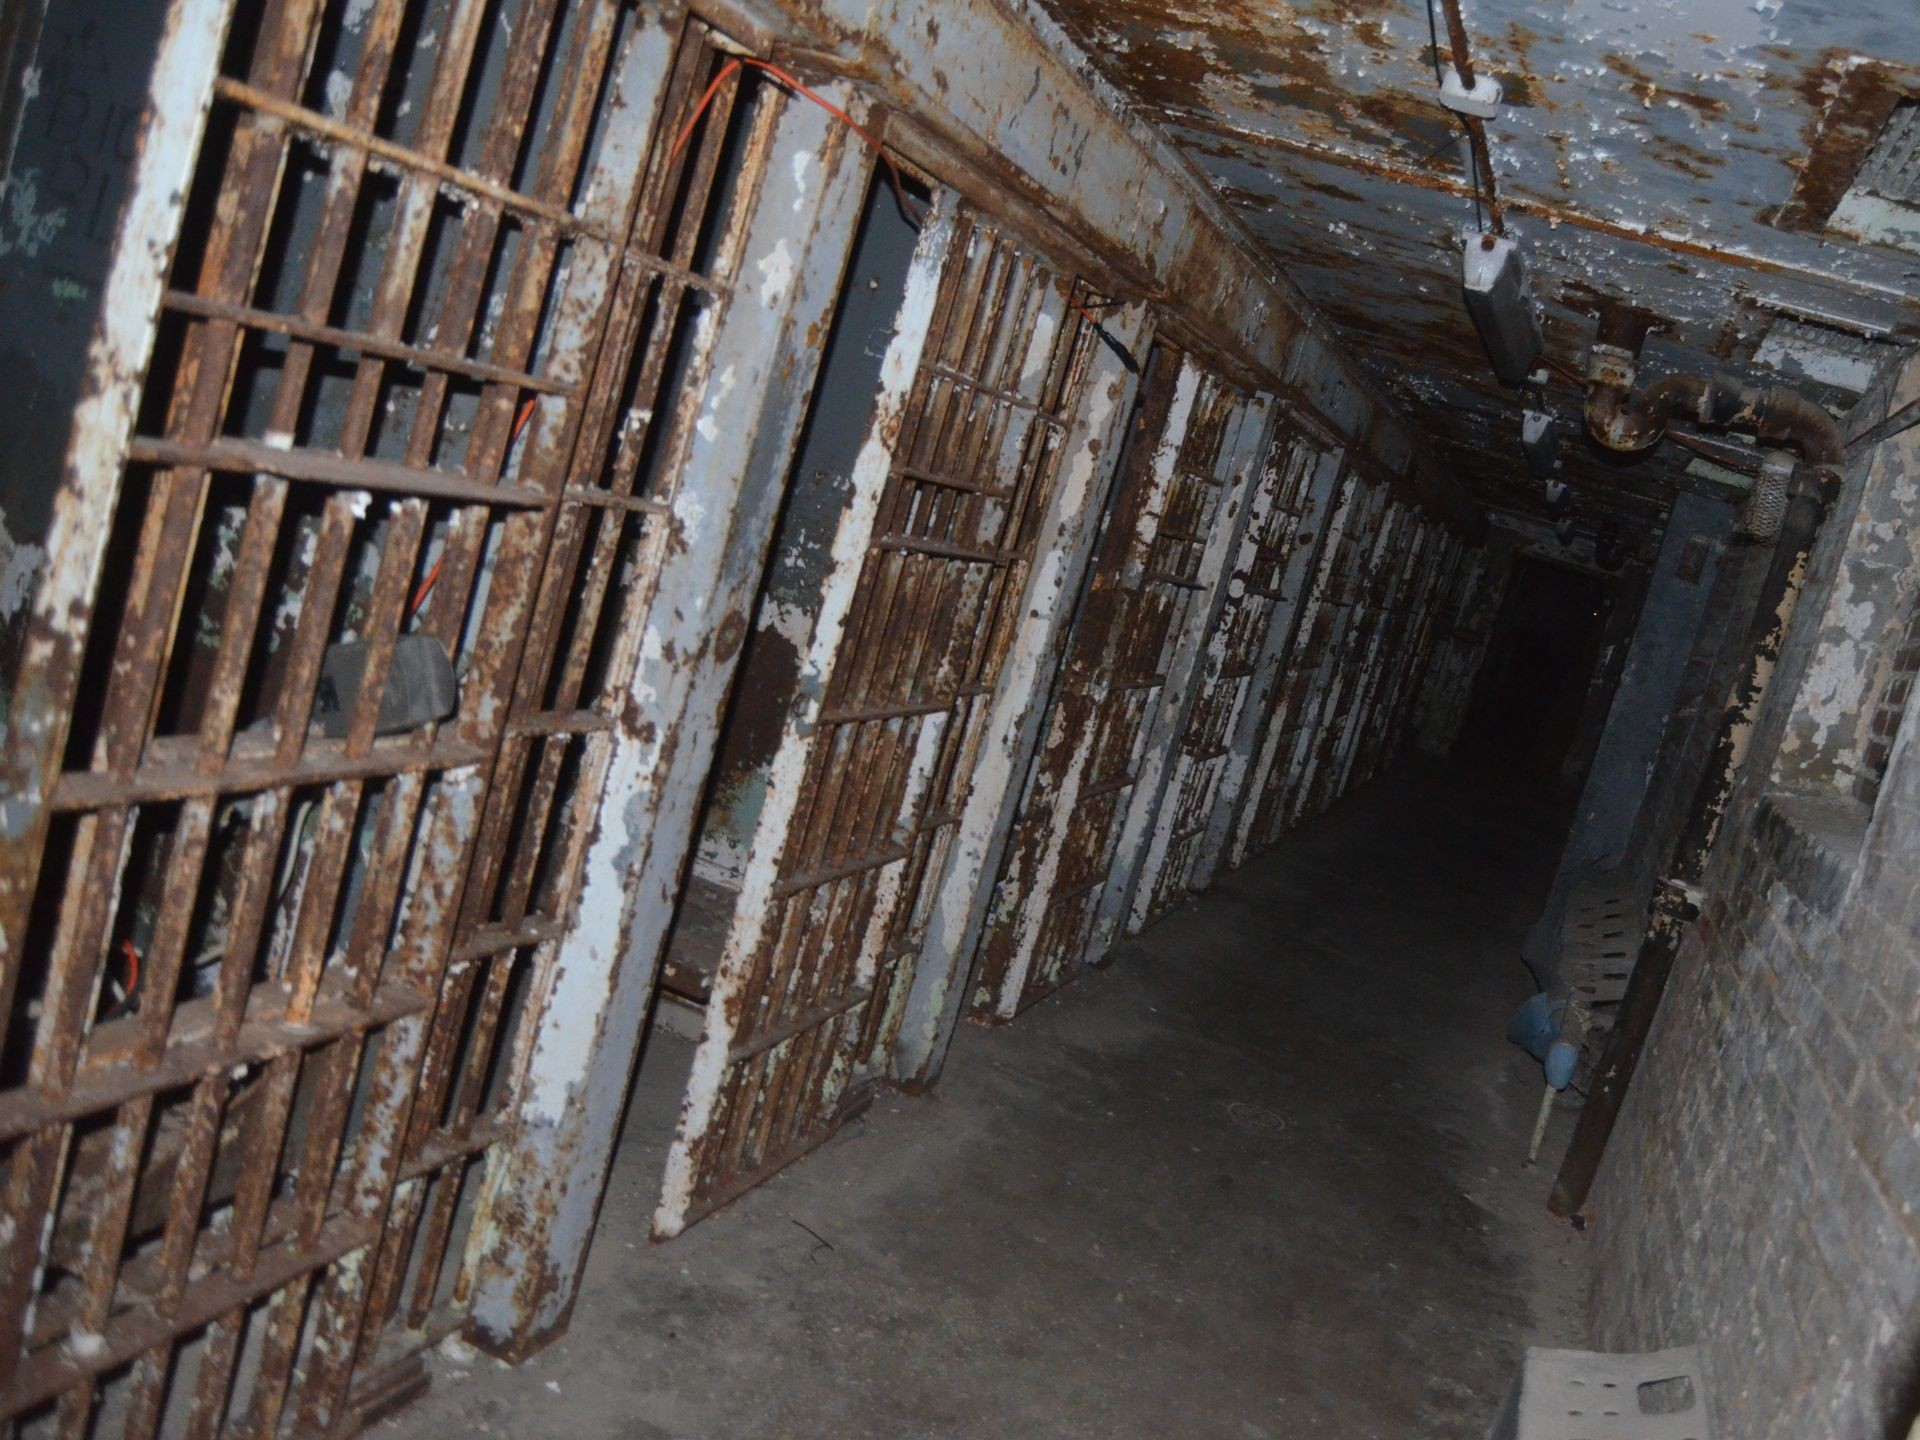 haunting changes coming to mansfield reformatory | wkyc